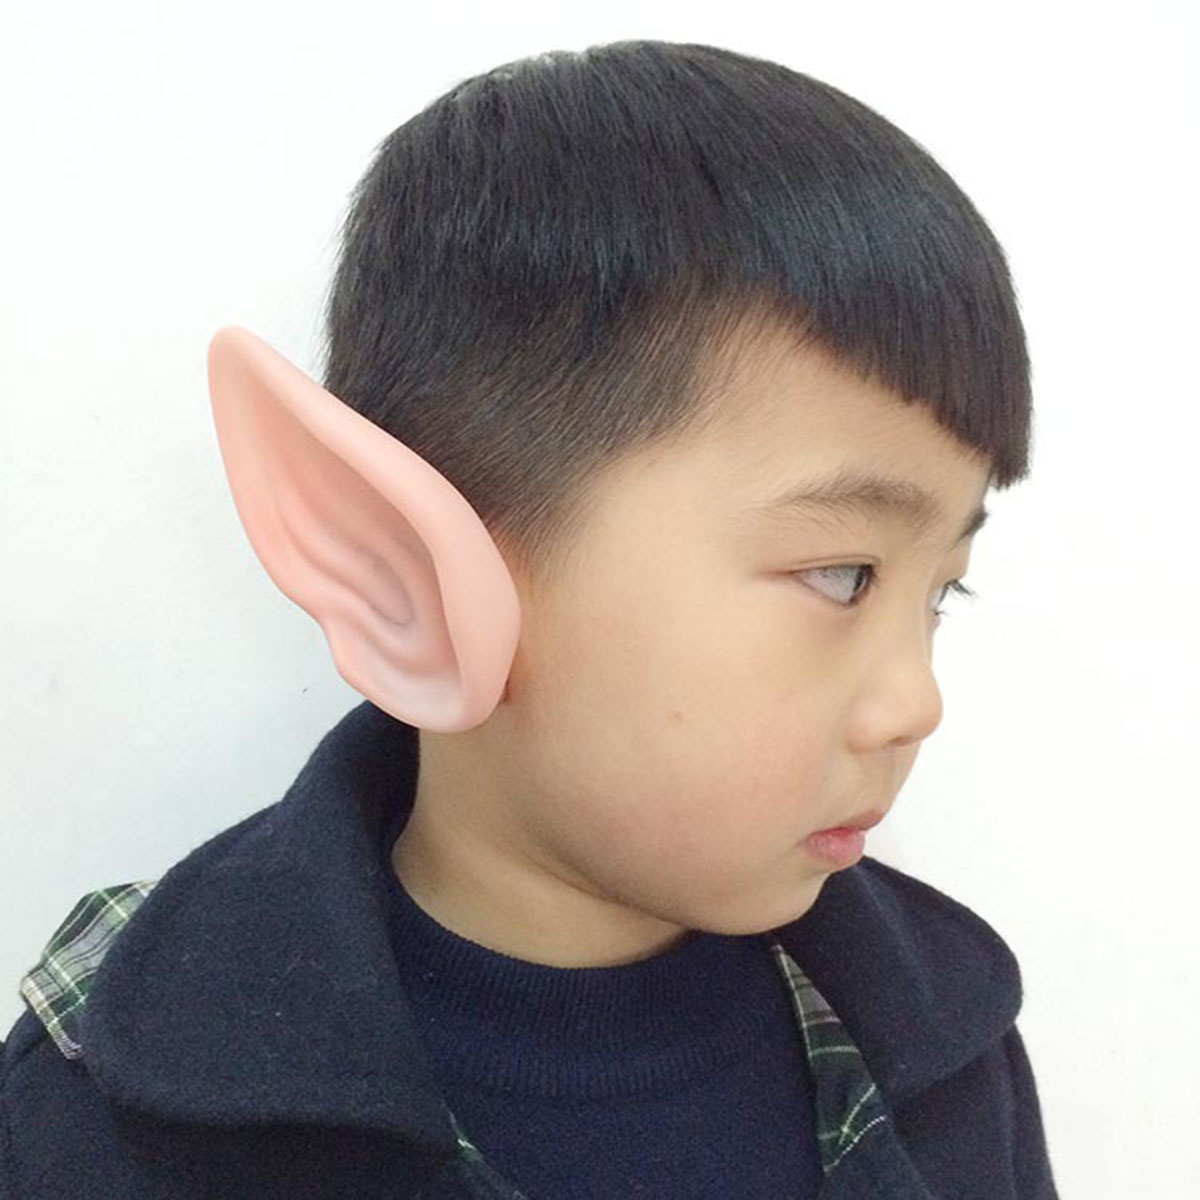 1 Pair PVC Fairy Pixie Fake Elf Ears Halloween Mask New Party Mask Scary Halloween Decoration Soft Pointed Prosthetic Ears 10c 2